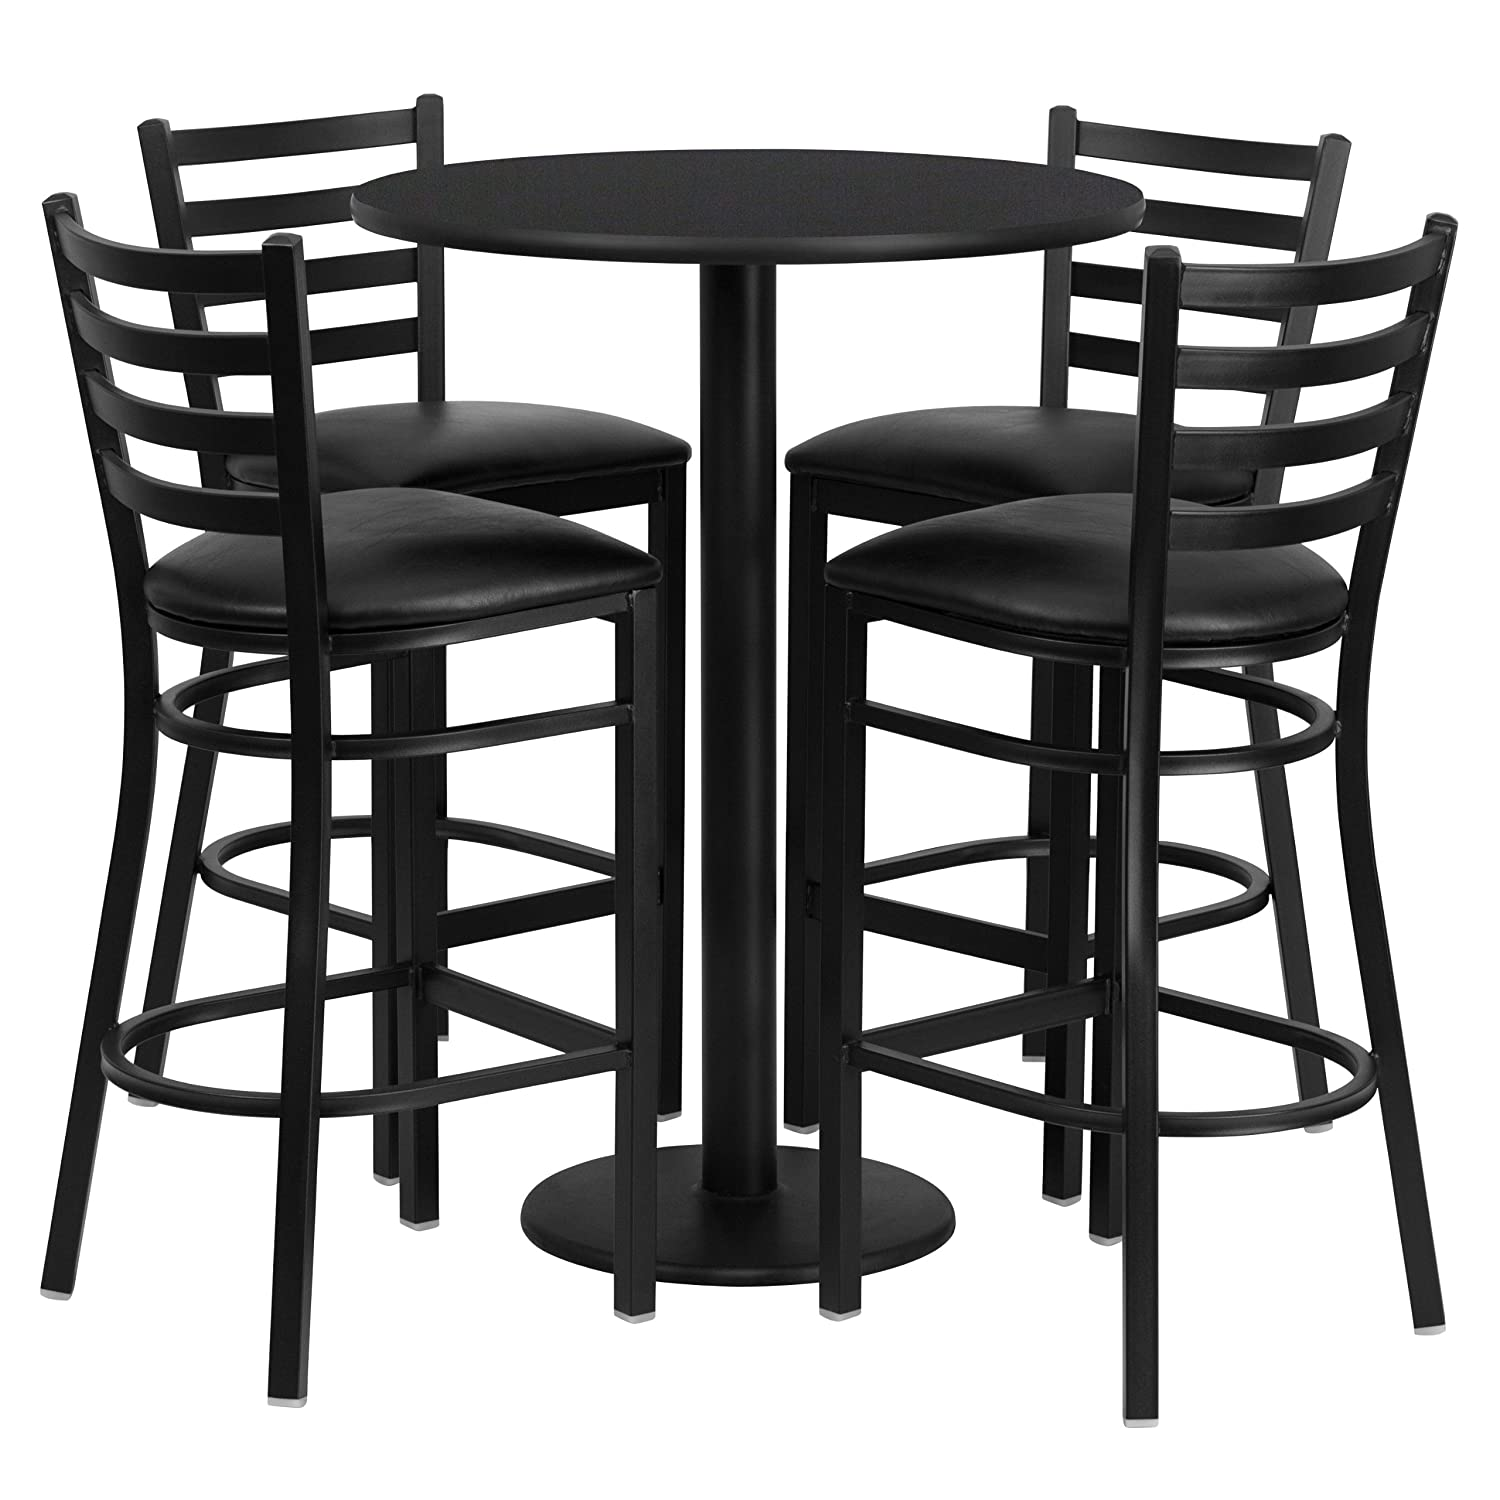 Amazon.com Flash Furniture 30u0027u0027 Round Black Laminate Table Set with 4 Ladder Back Metal Barstools - Black Vinyl Seat Kitchen u0026 Dining  sc 1 st  Amazon.com : black bar table set - pezcame.com